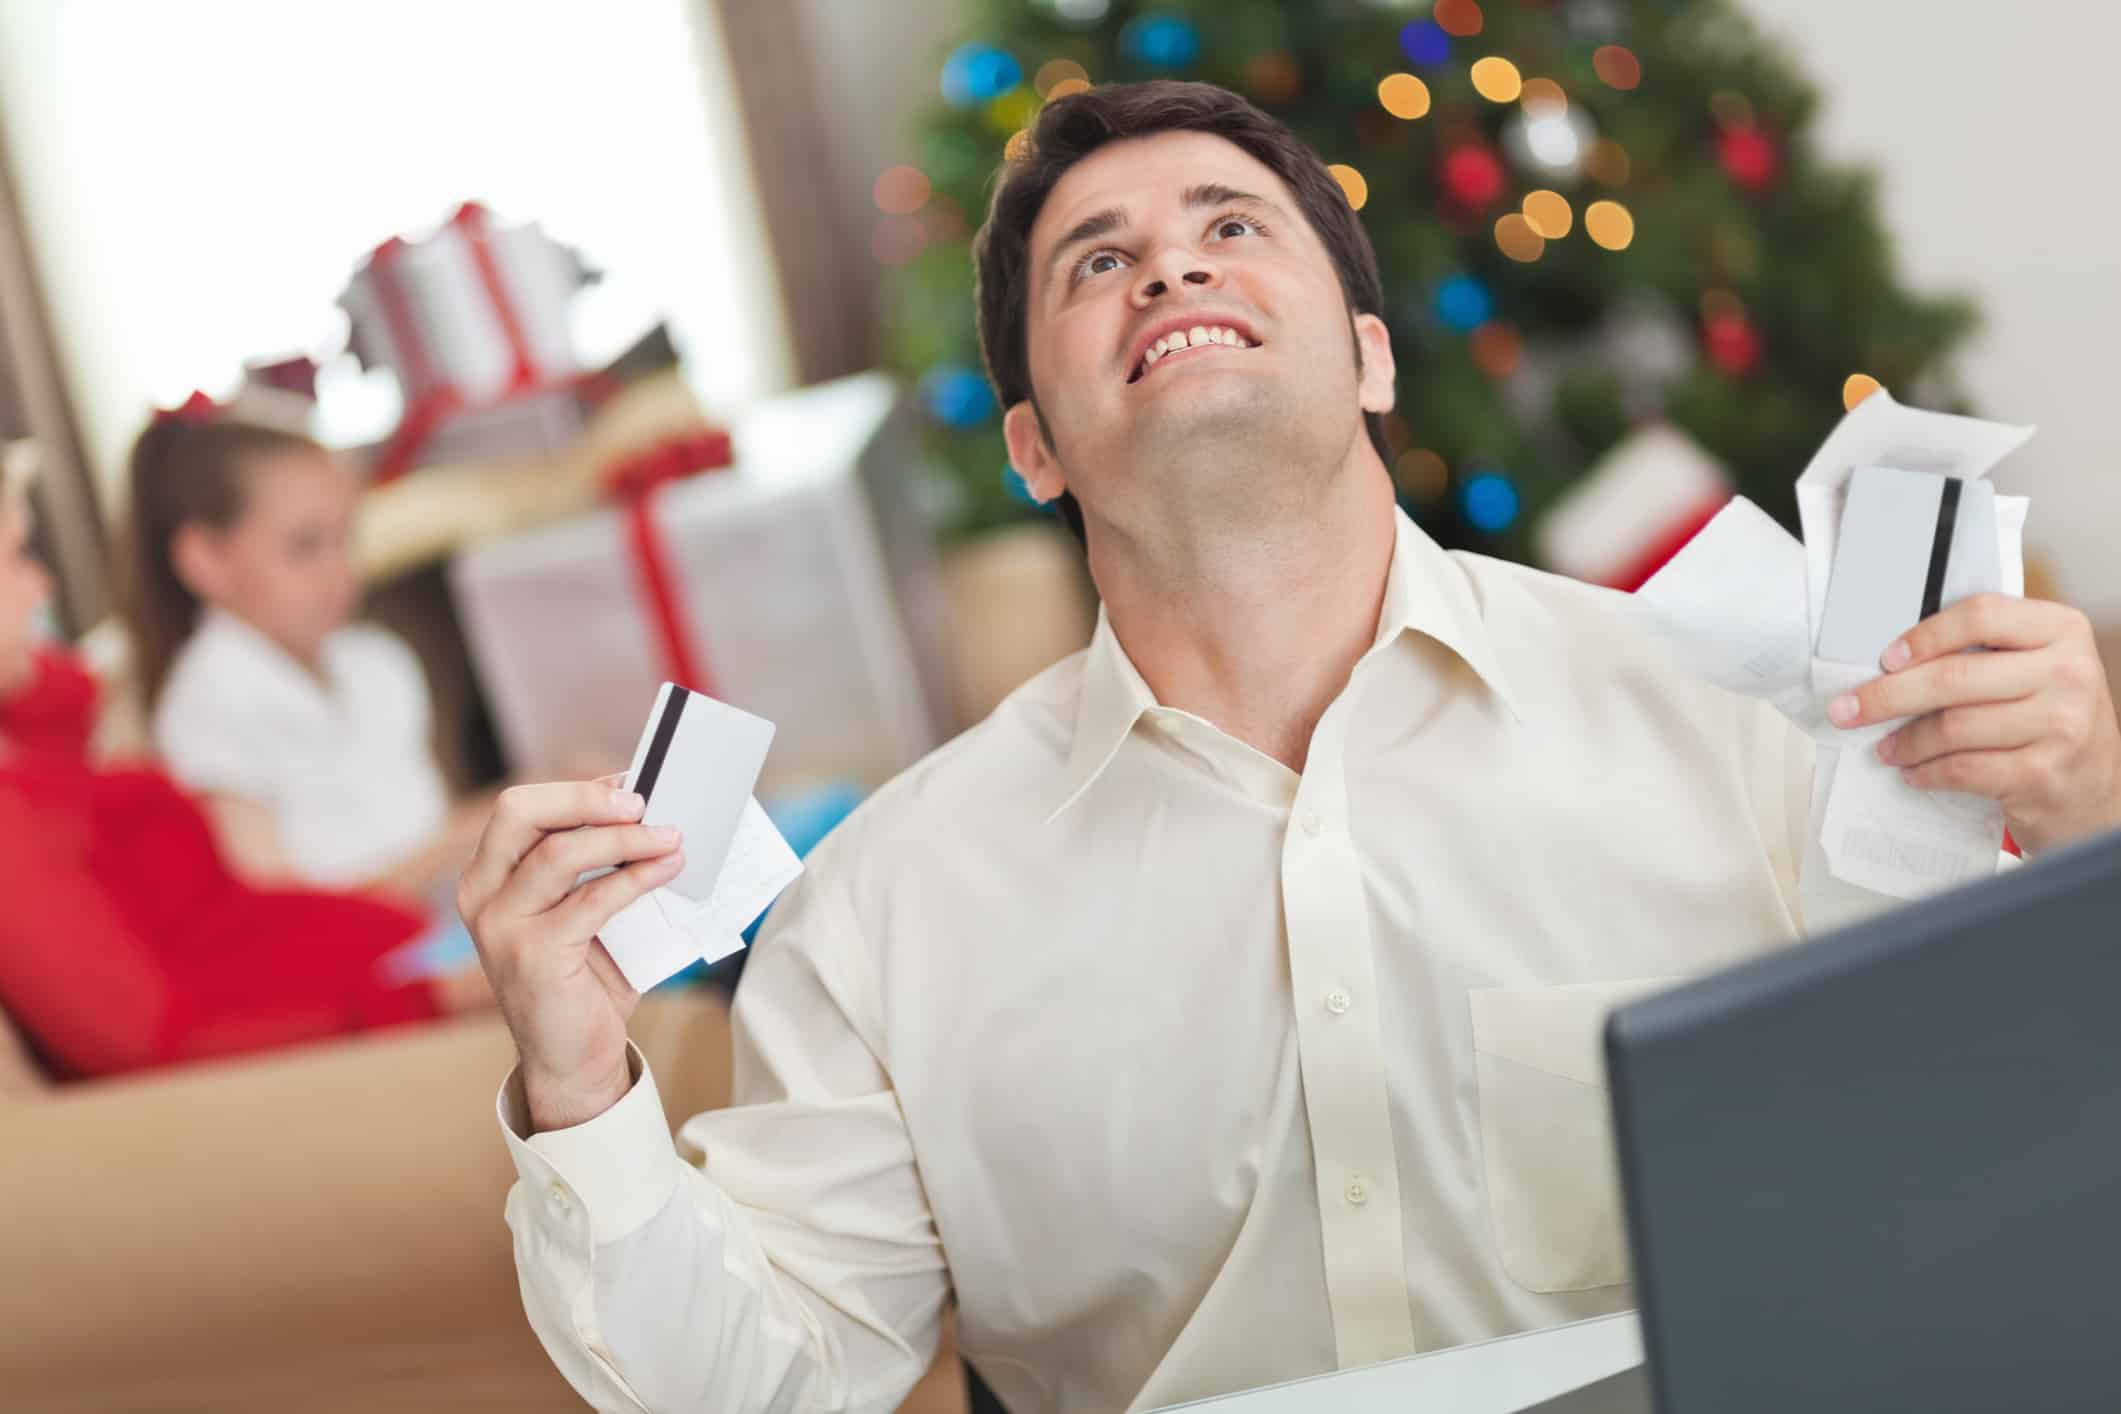 Overspending On The Holidays: Even The Experts Fall Victim